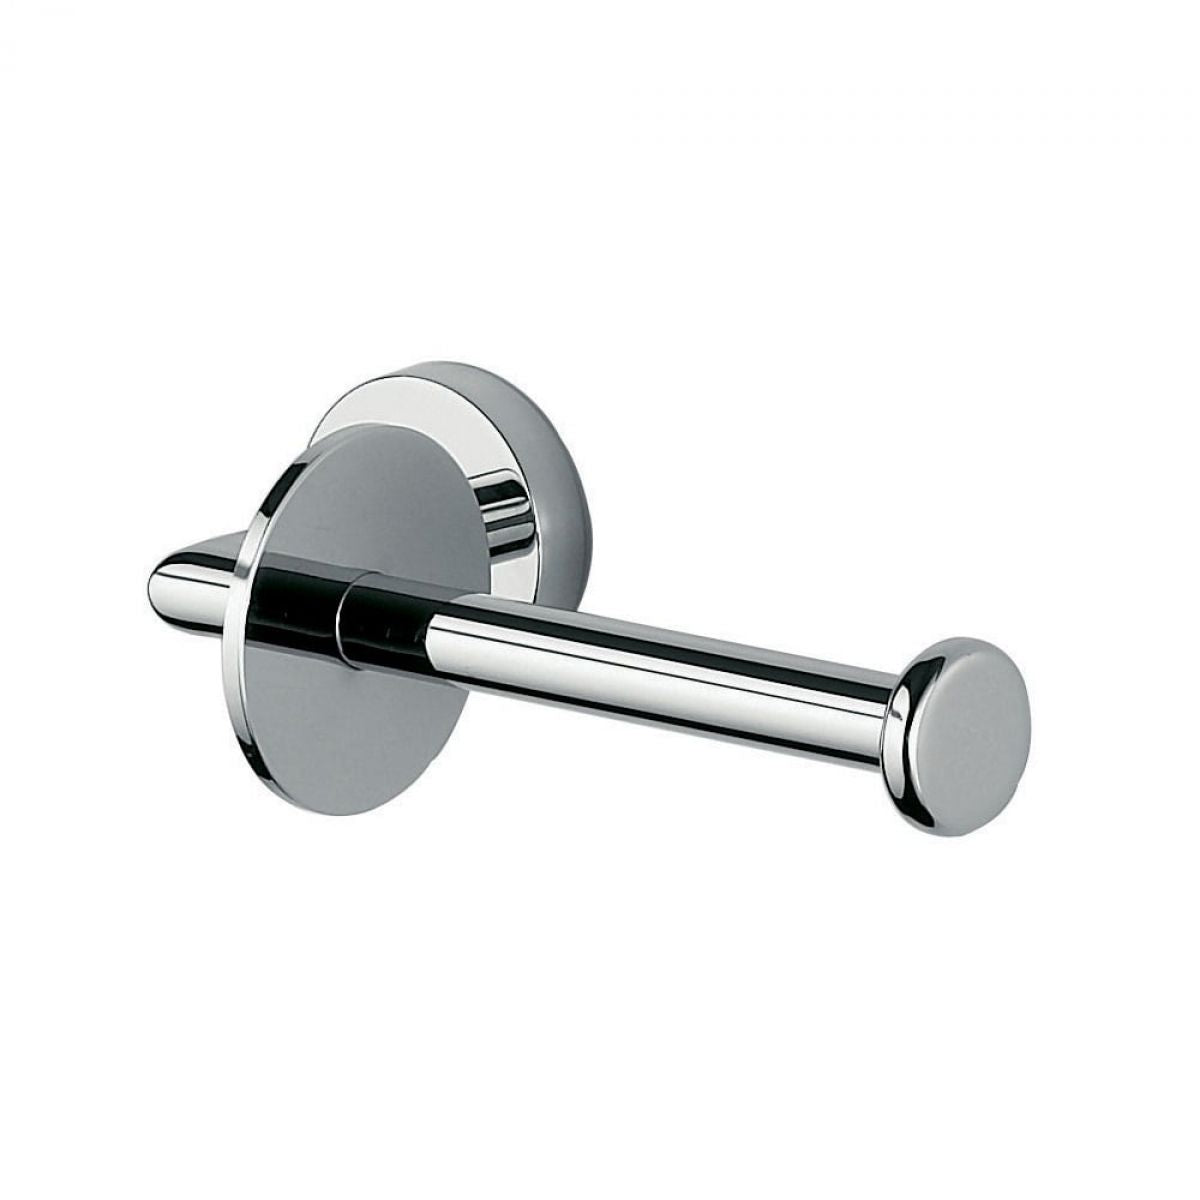 Forum Toilet Roll Holder - blueskybathrooms